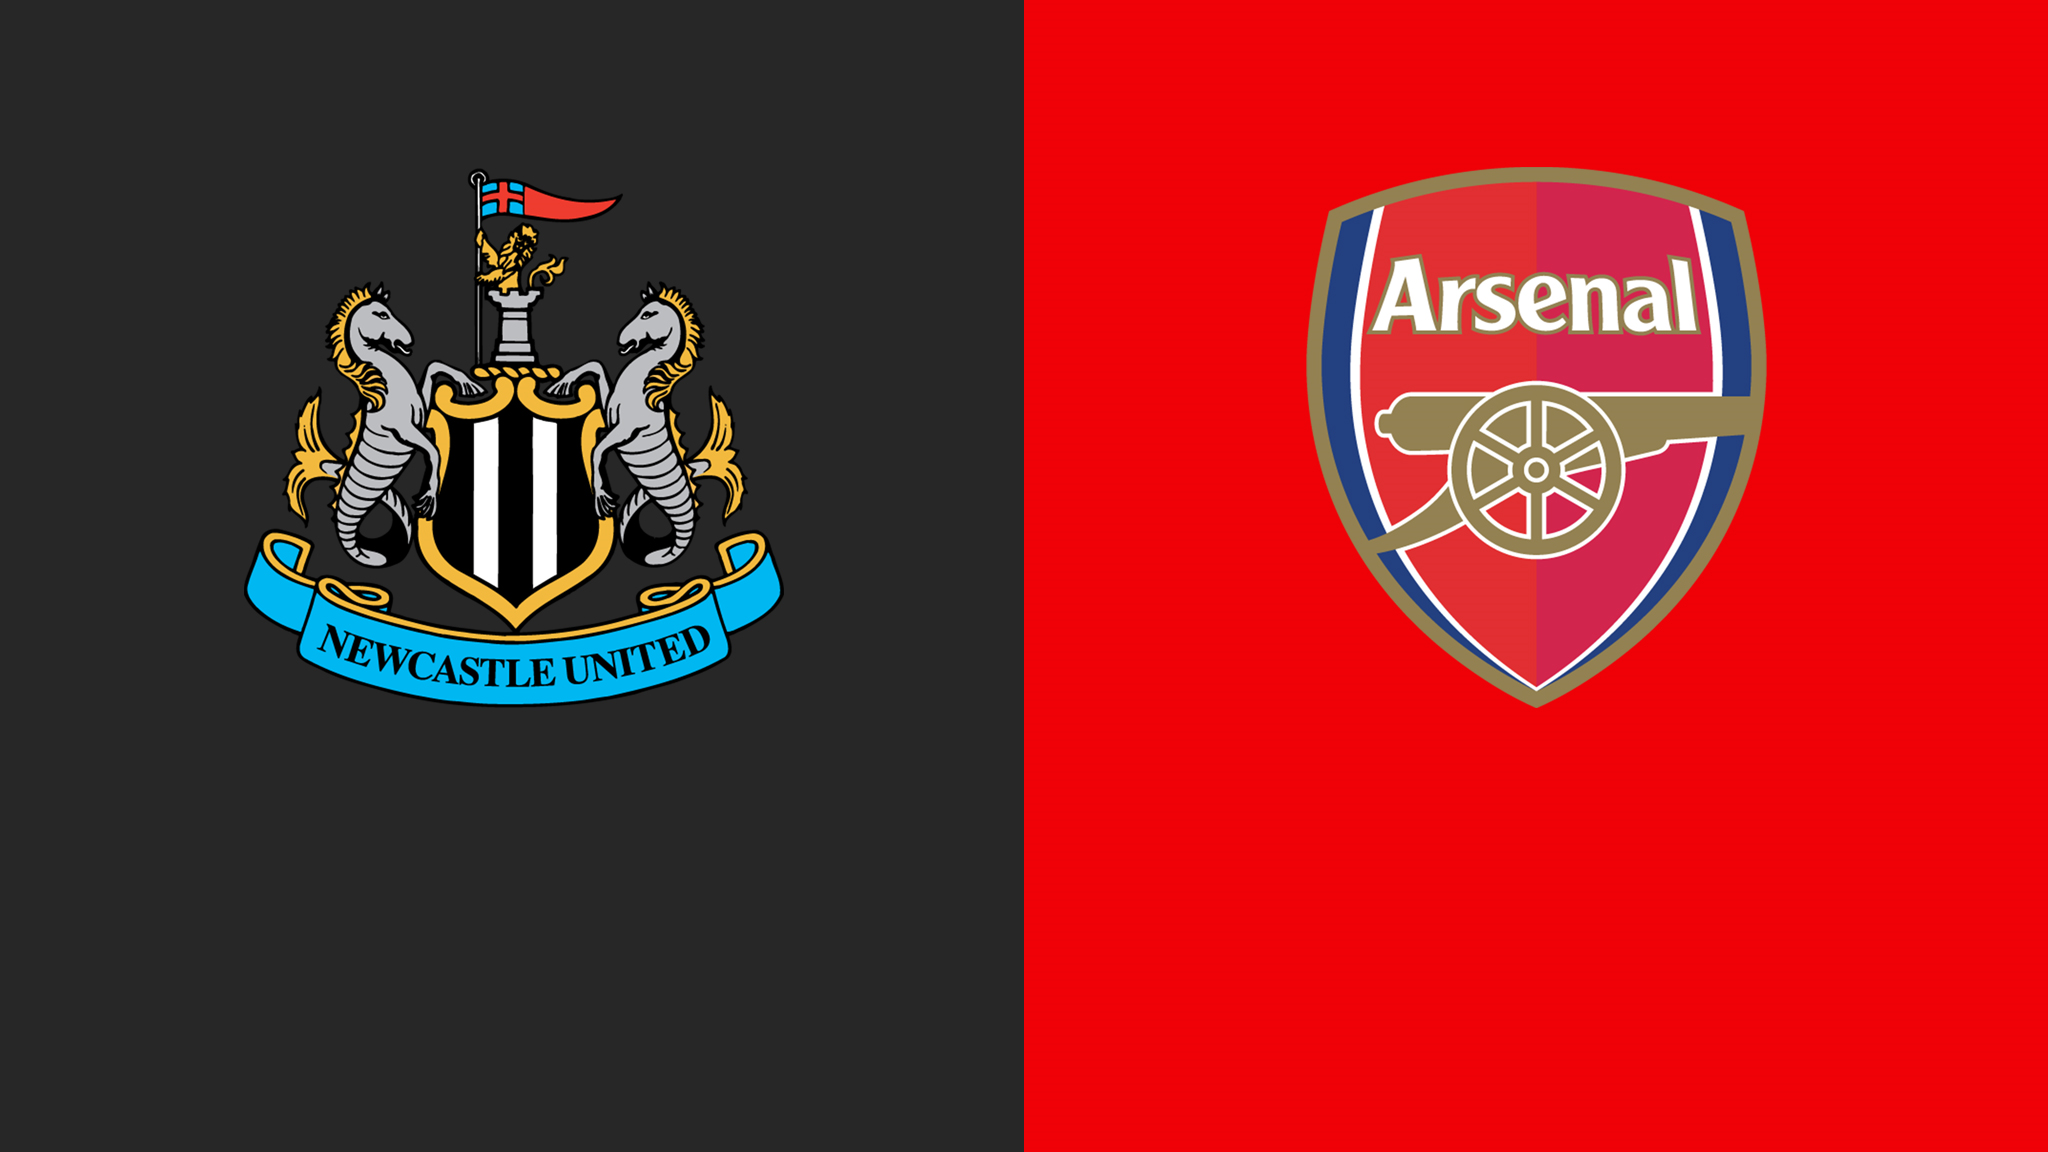 Arsenal vs Newcastle United preview